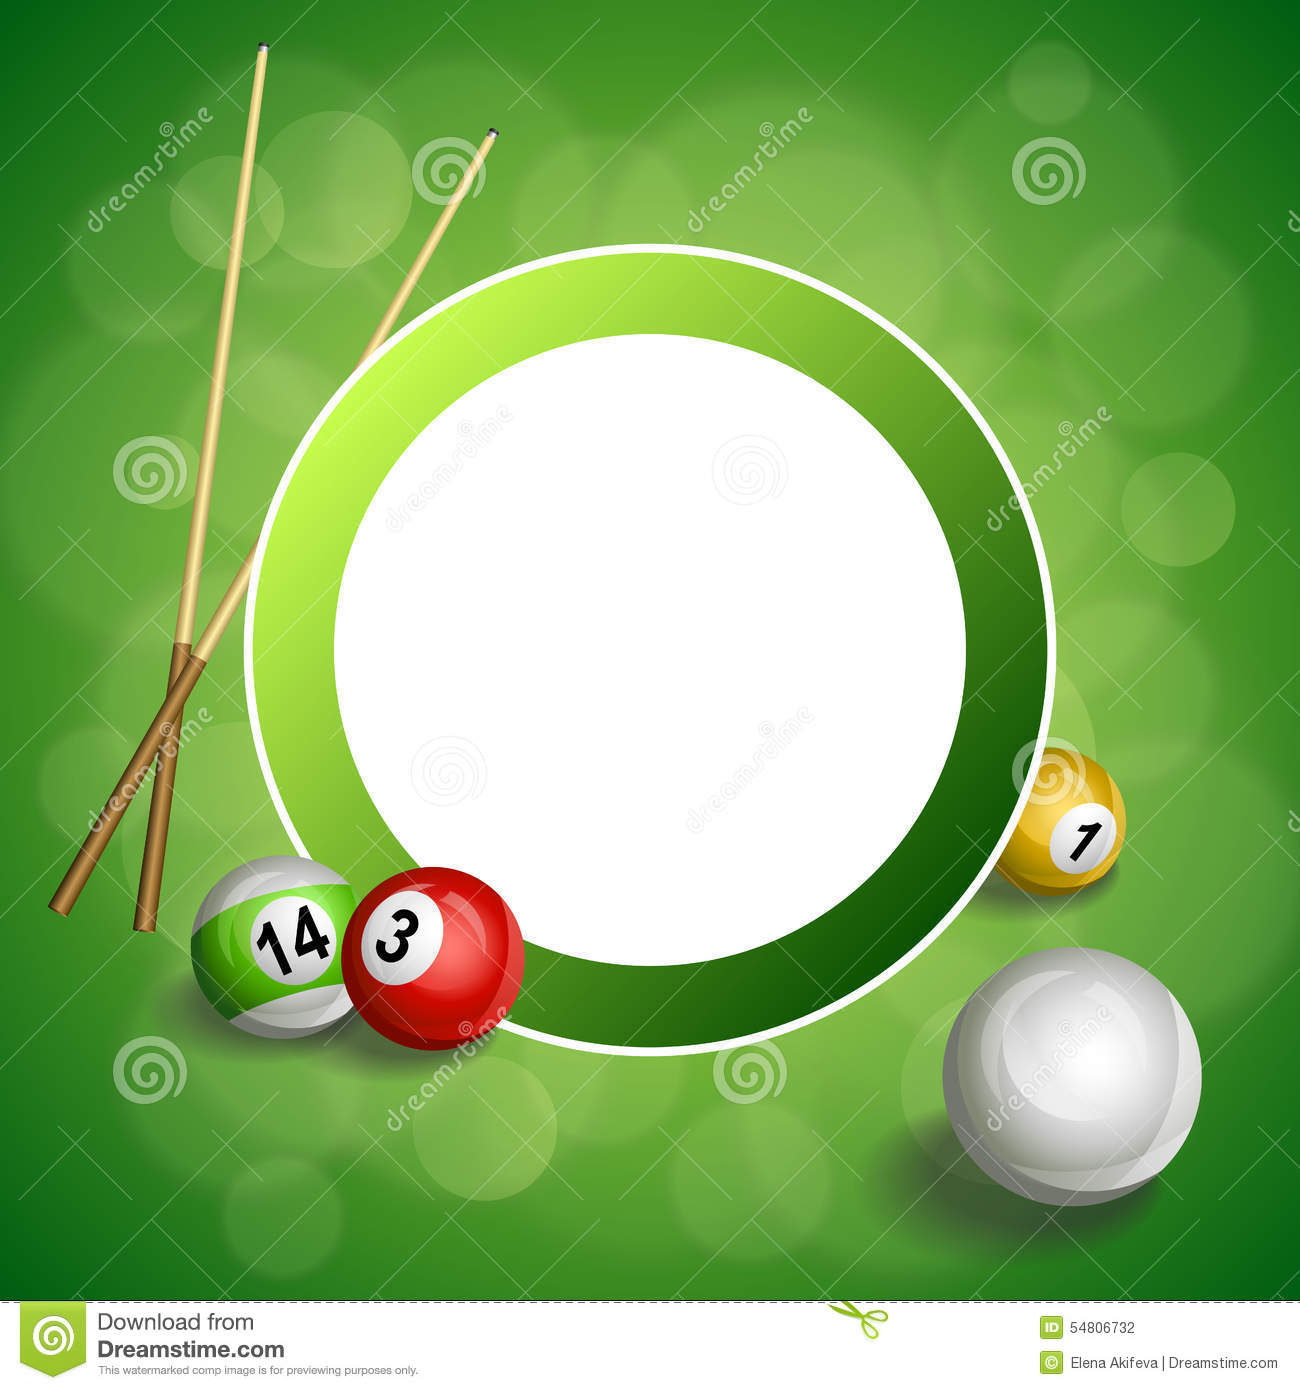 Background abstract green billiard pool cue red ball circle frame illustration